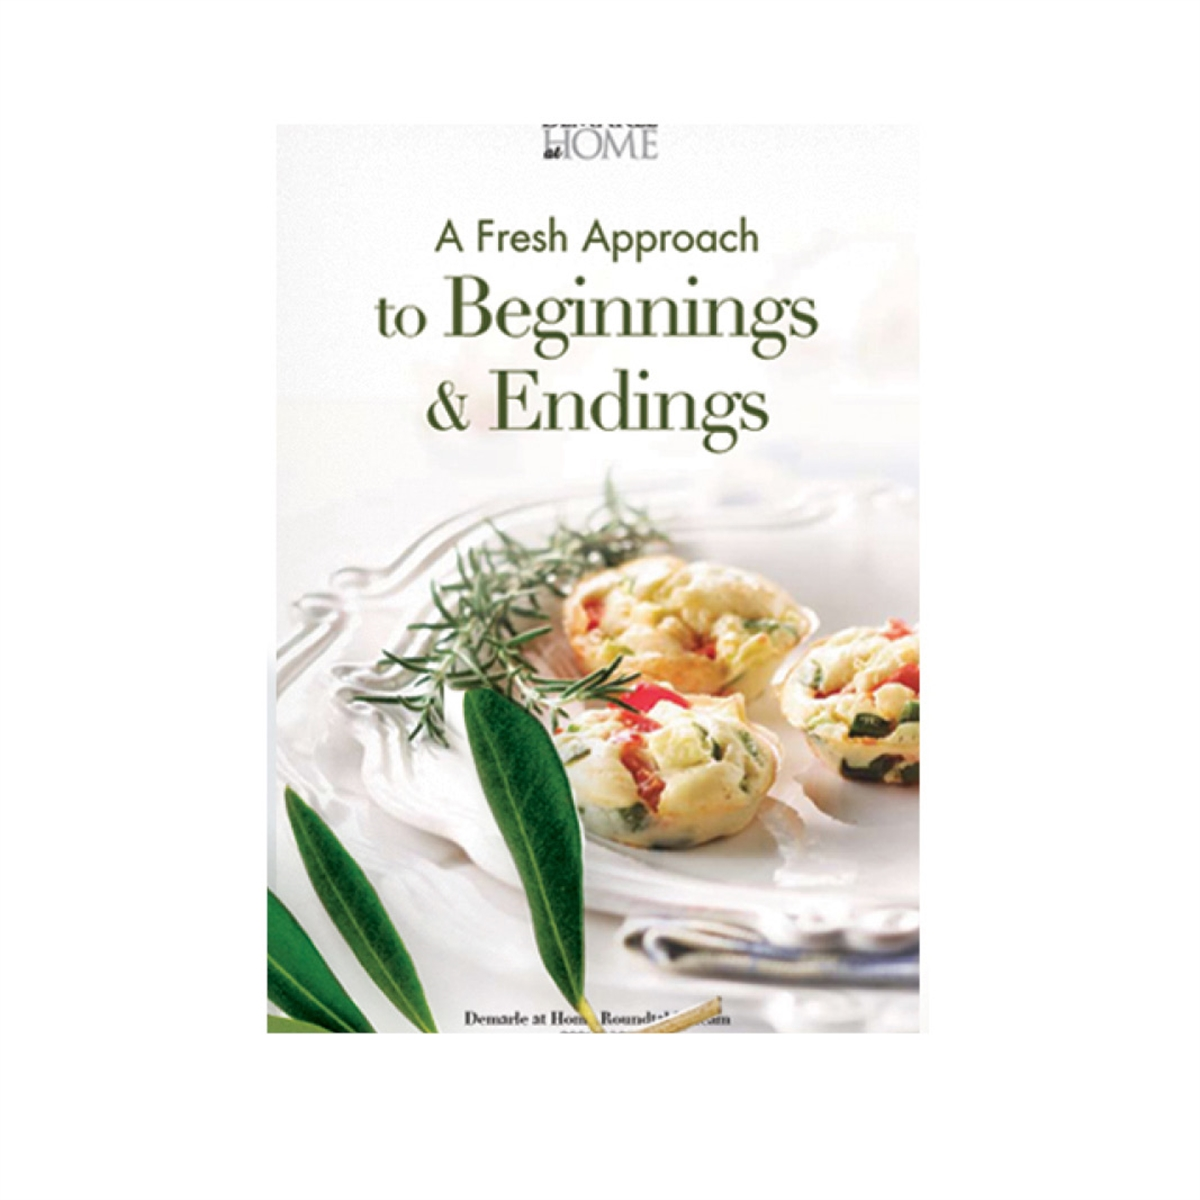 Picture of FRESH APPROACH TO BEGINNINGS & ENDINGS COOKBOOK